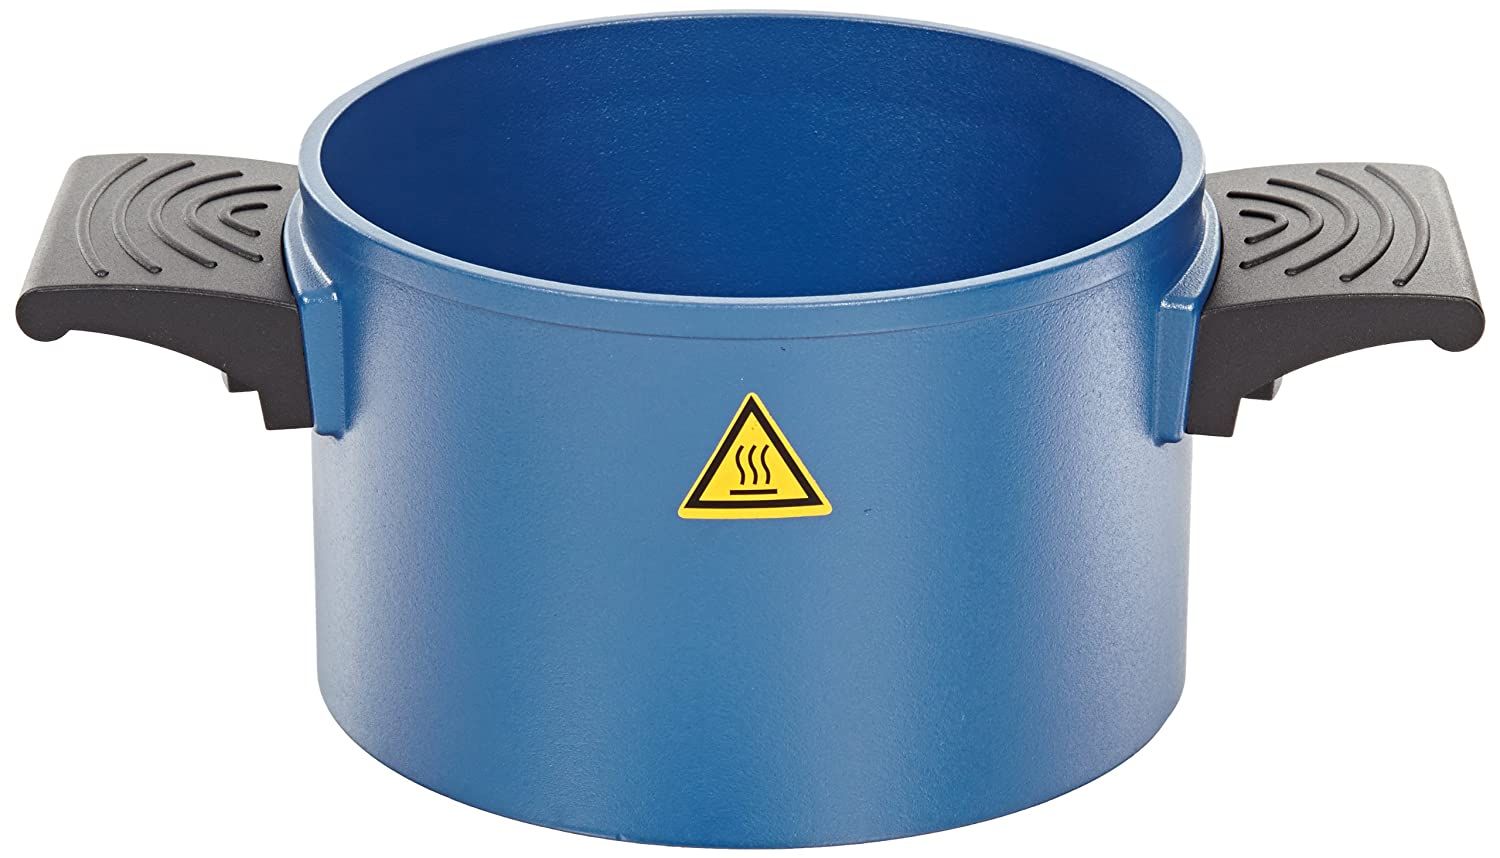 Heidolph 036110440 Aluminum Water Heating Bath for Hot Plates and Hot Plates Stirrers, PTFE Coated, 1L Capacity